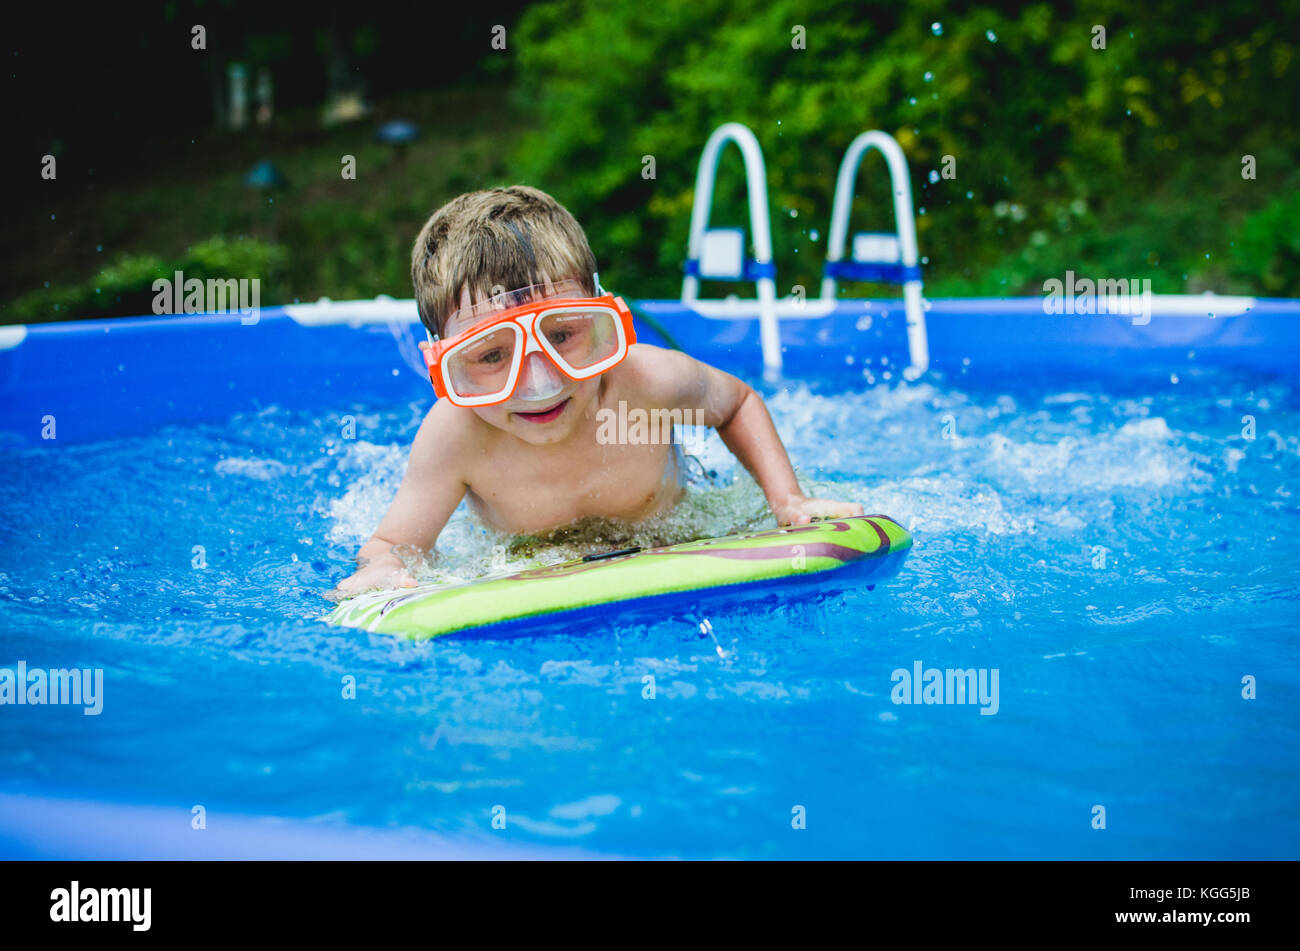 8-9 year old playing on a boogie board in a pool in summer. Stock Photo